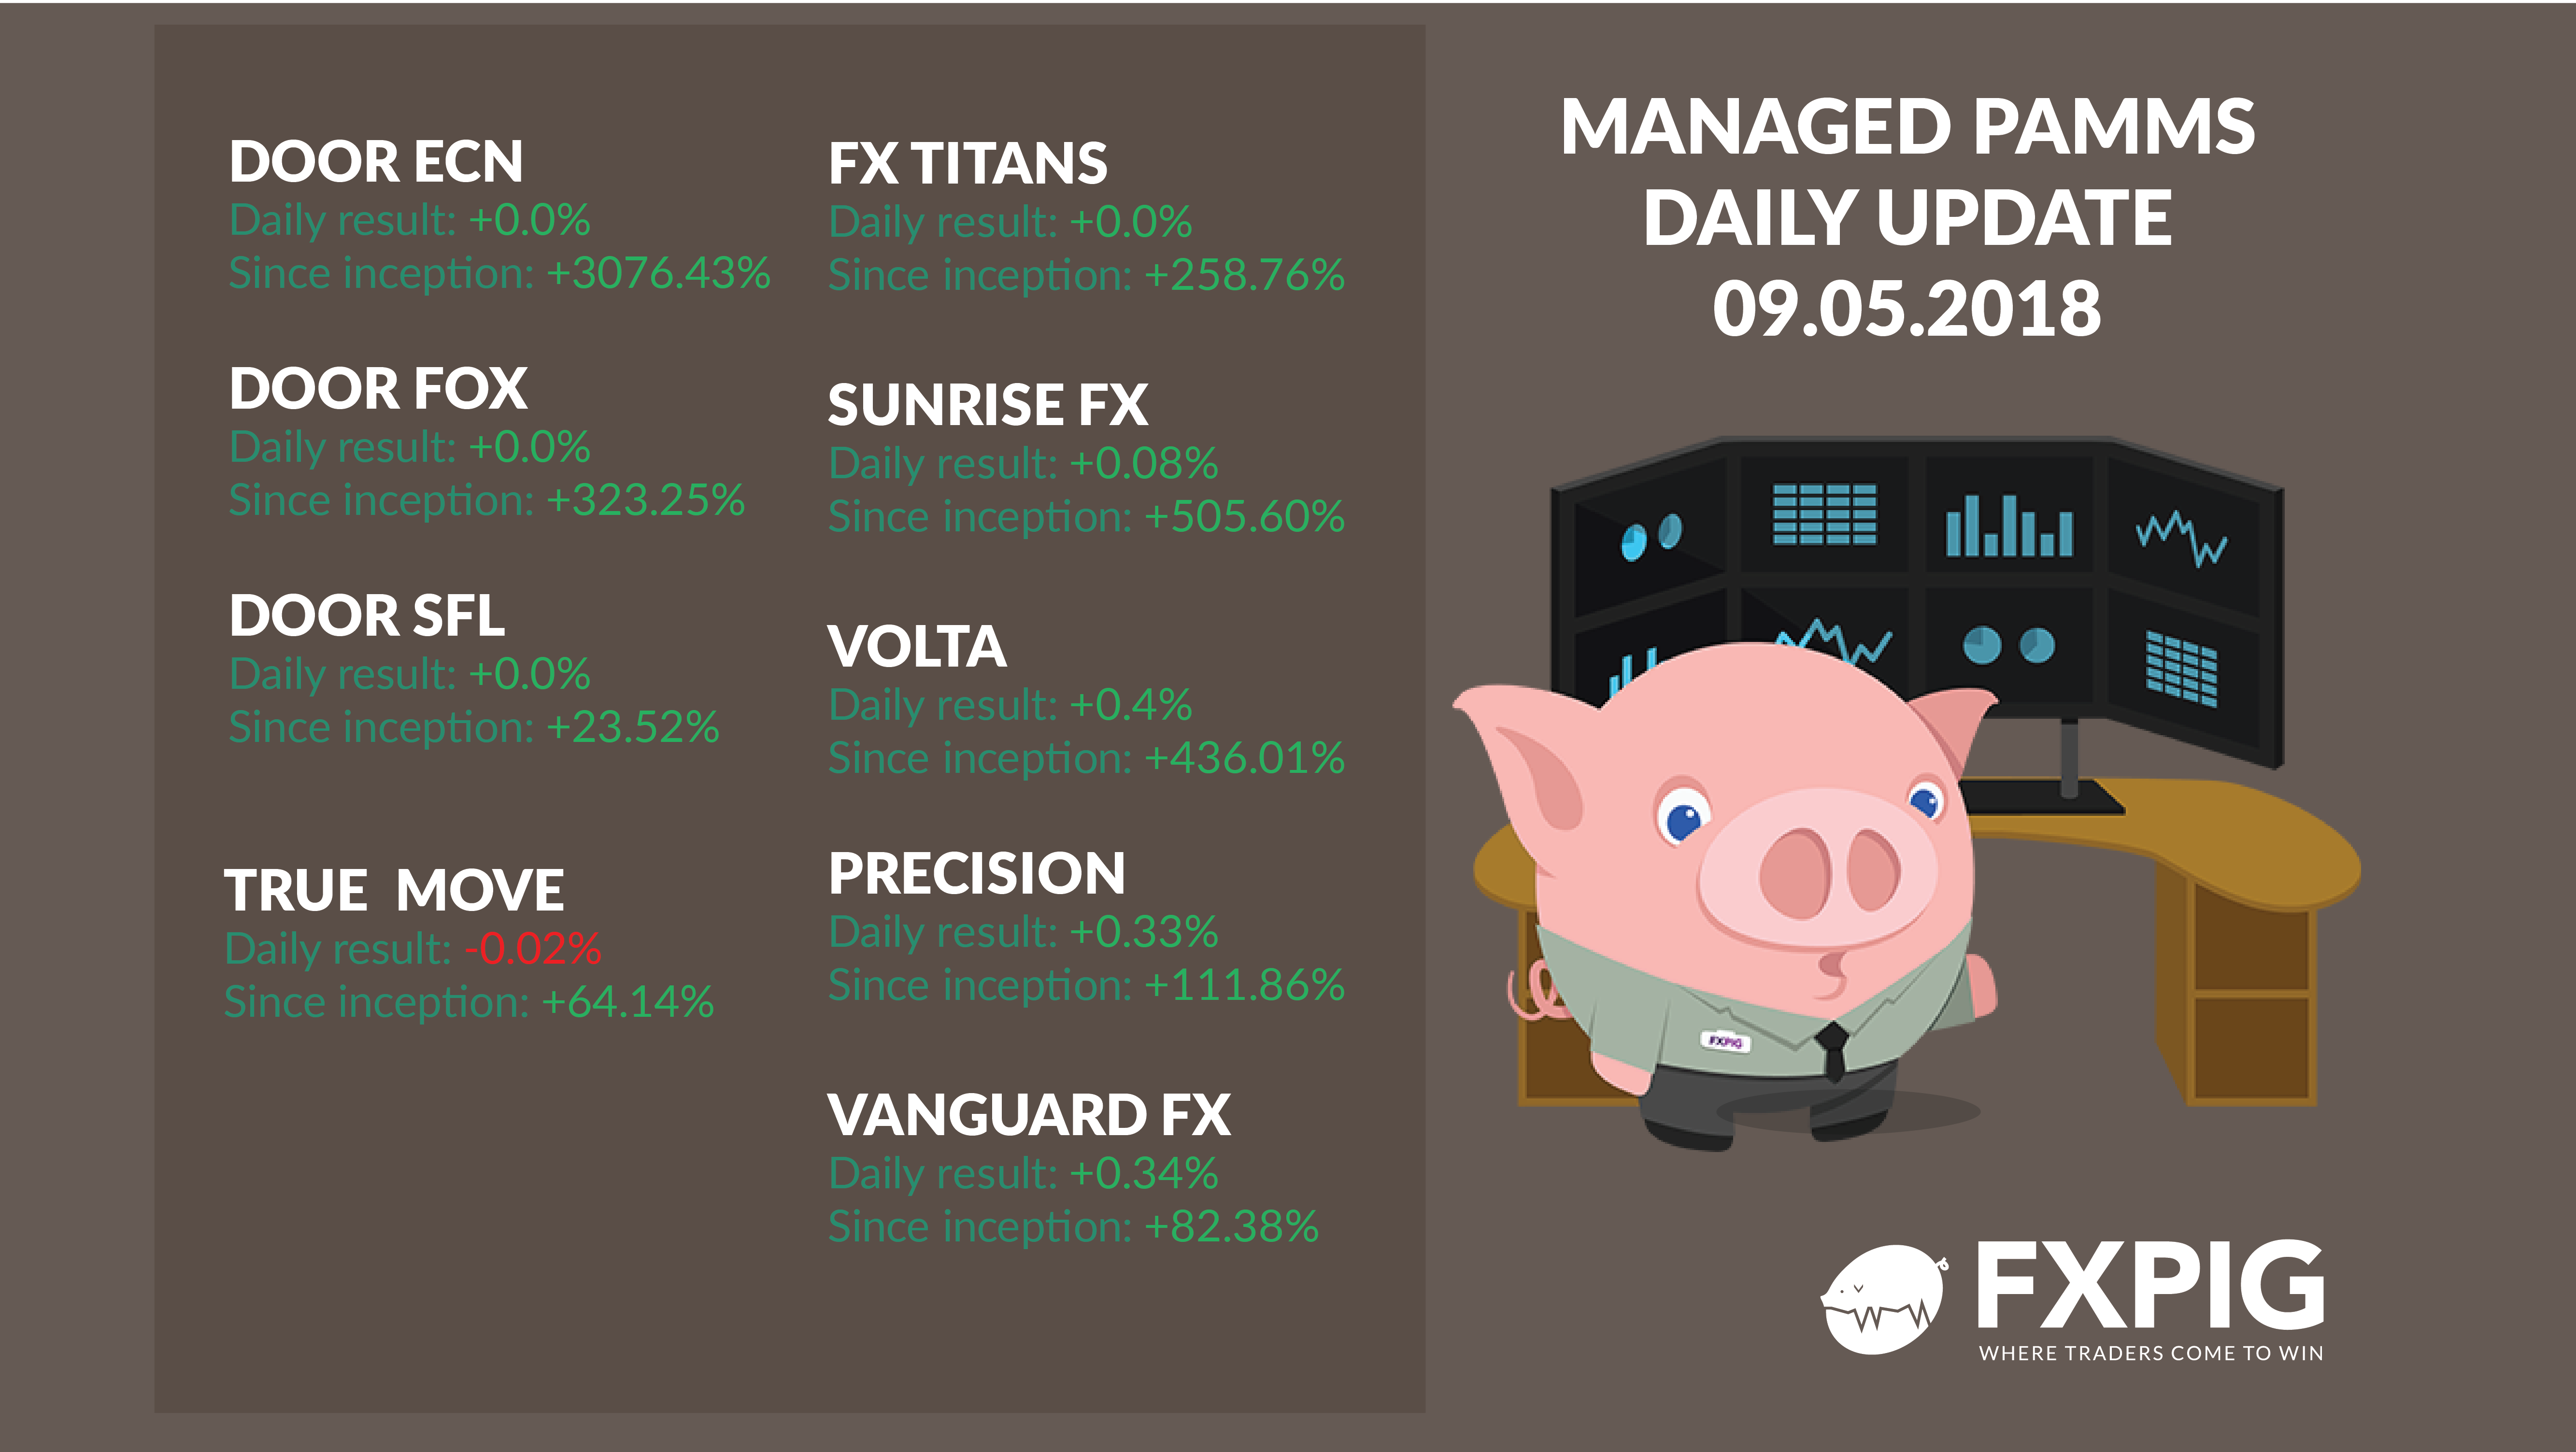 FOREX_Daily-managed-accounts-0905_FXPIG